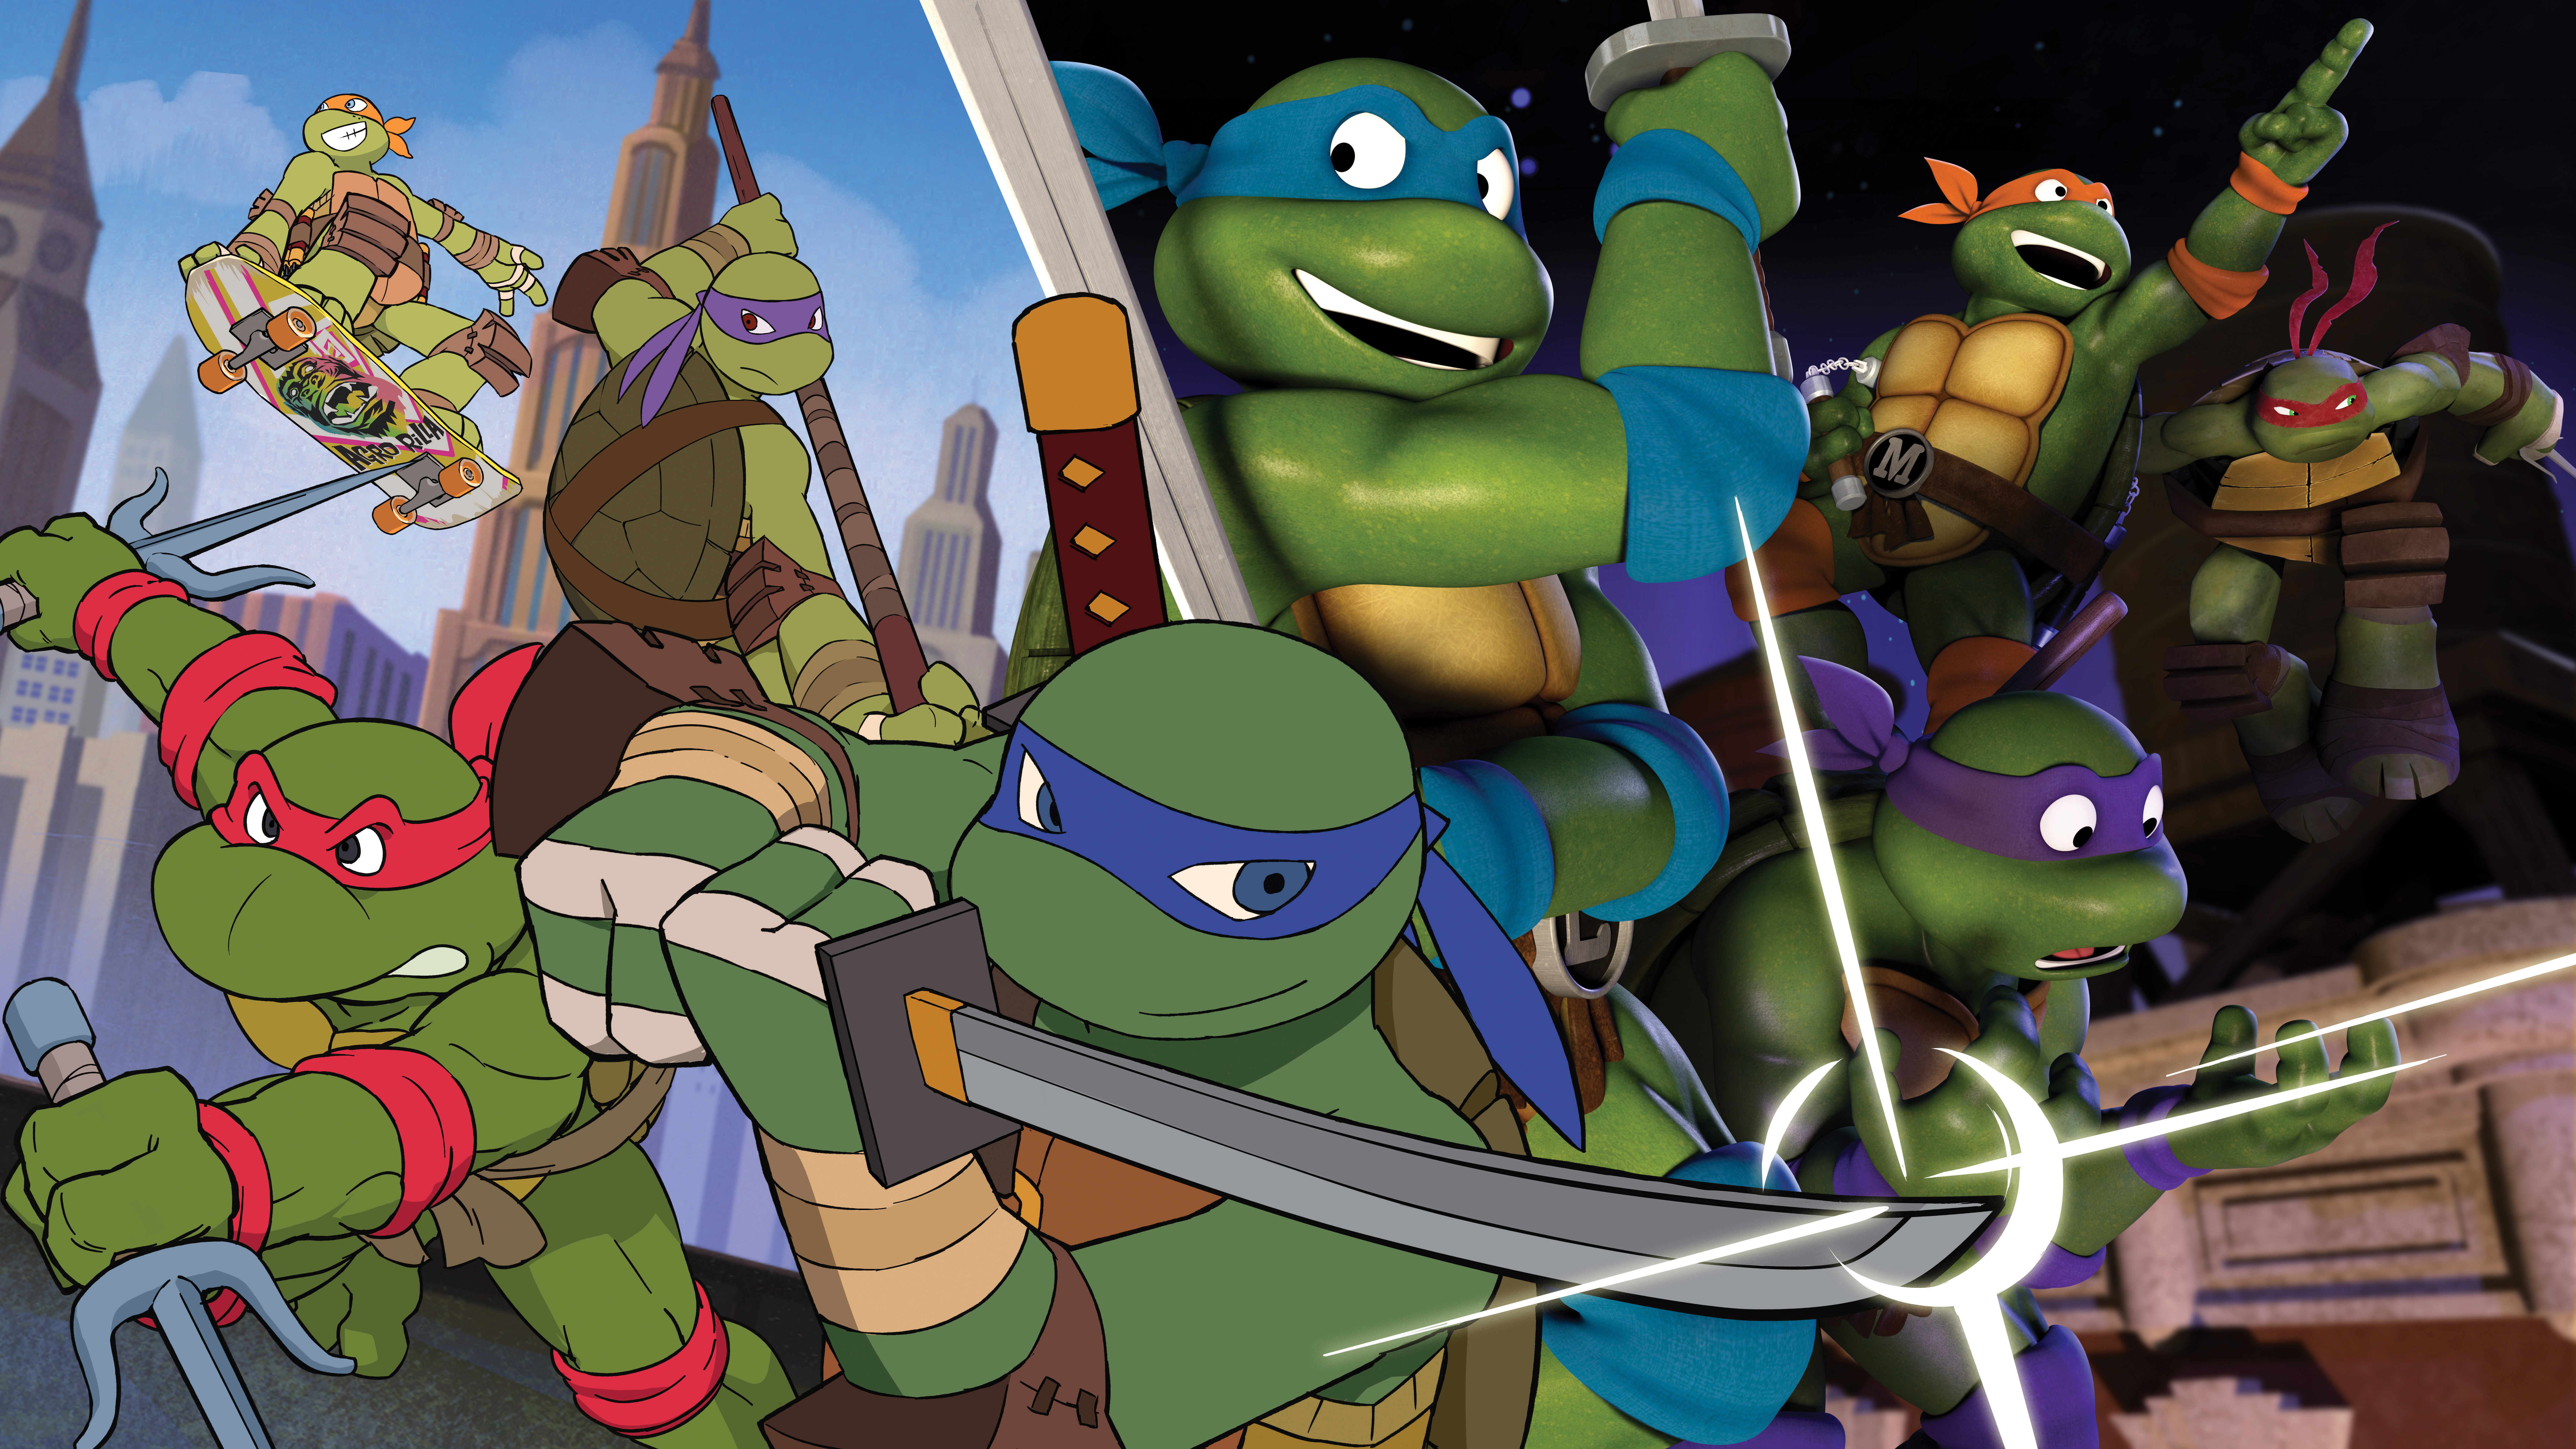 Nickelodeon S Teenage Mutant Ninja Turtles Reunites Original 1980s Turtles And Krang In Epic Time Travelling Episode Sunday March 27 11 A M Et Pt Business Wire